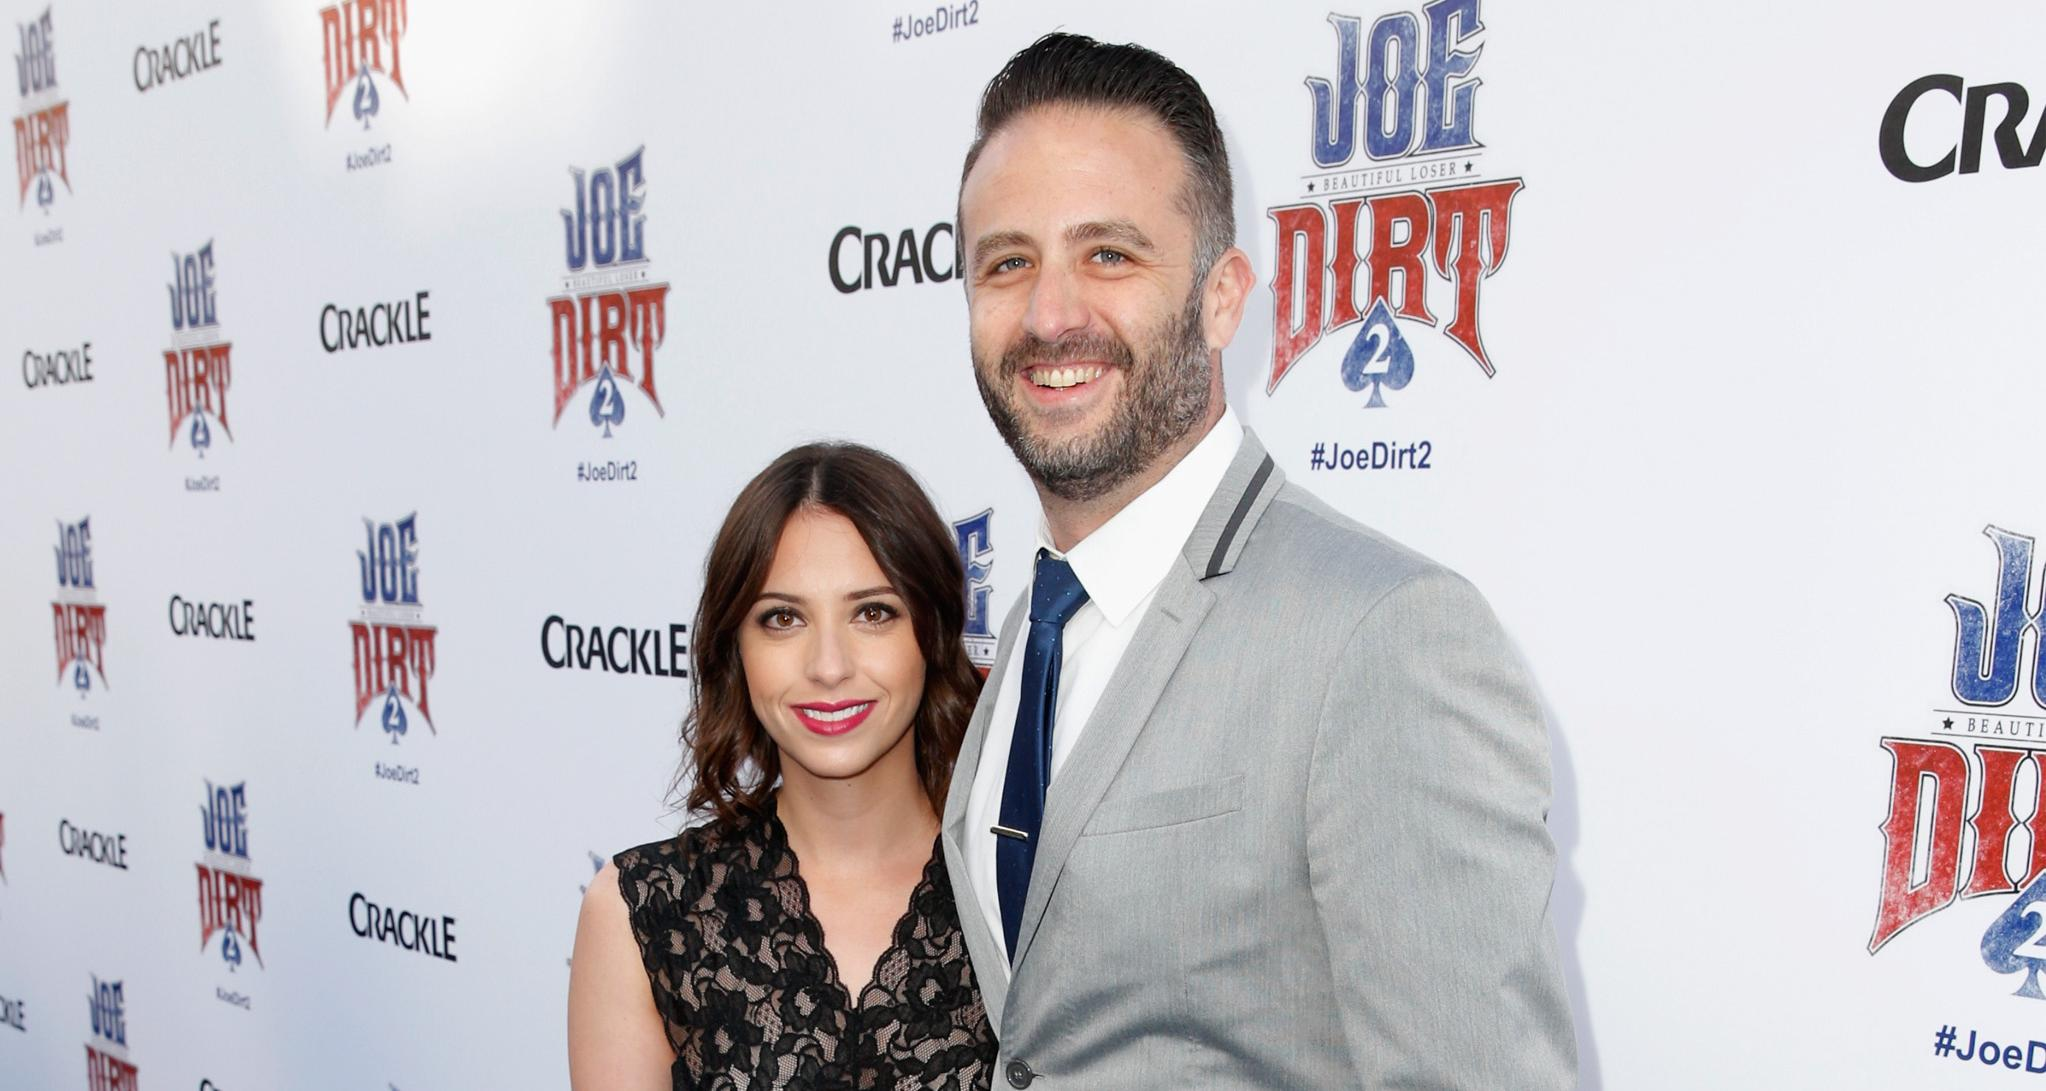 Actor Adam Eget (R) attends the world premiere of Crackle's Joe Dirt 2: Beautiful Loser at Sony Pictures Studios